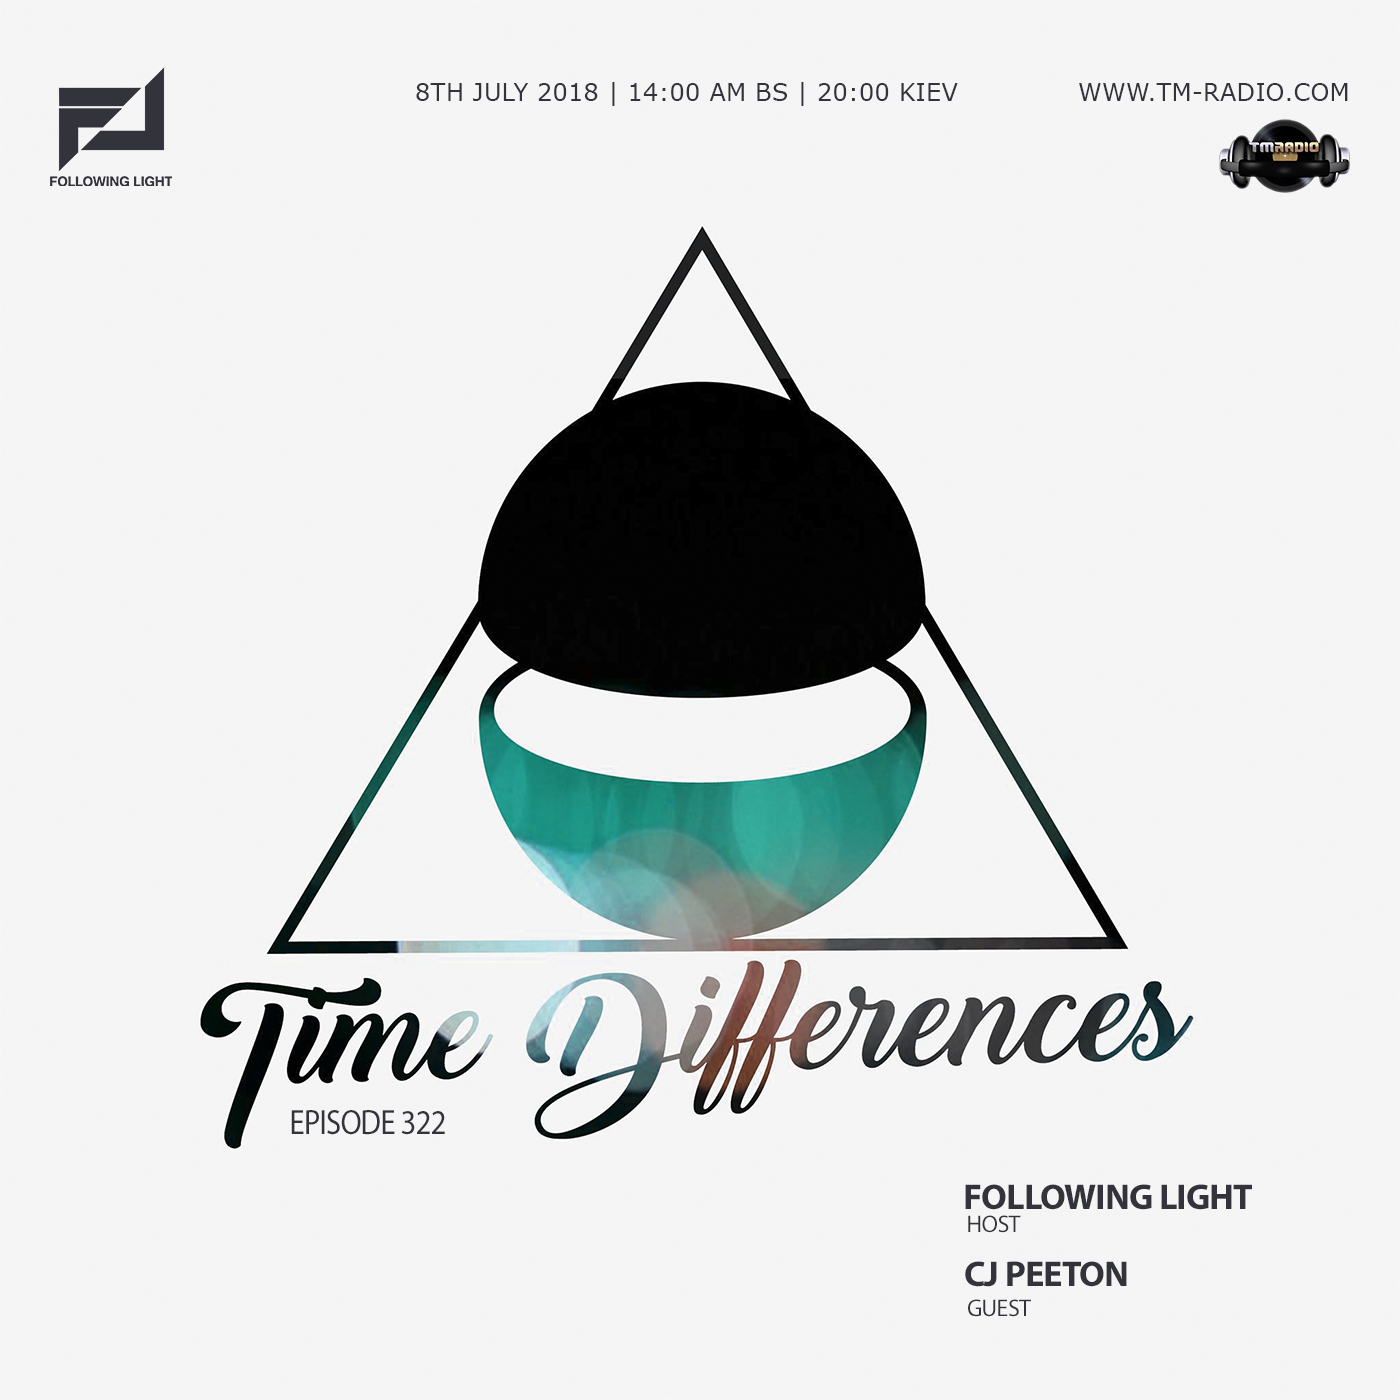 Time Differences :: Episode 322, with guest CJ Peeton and host Following Light (aired on July 8th, 2018) banner logo